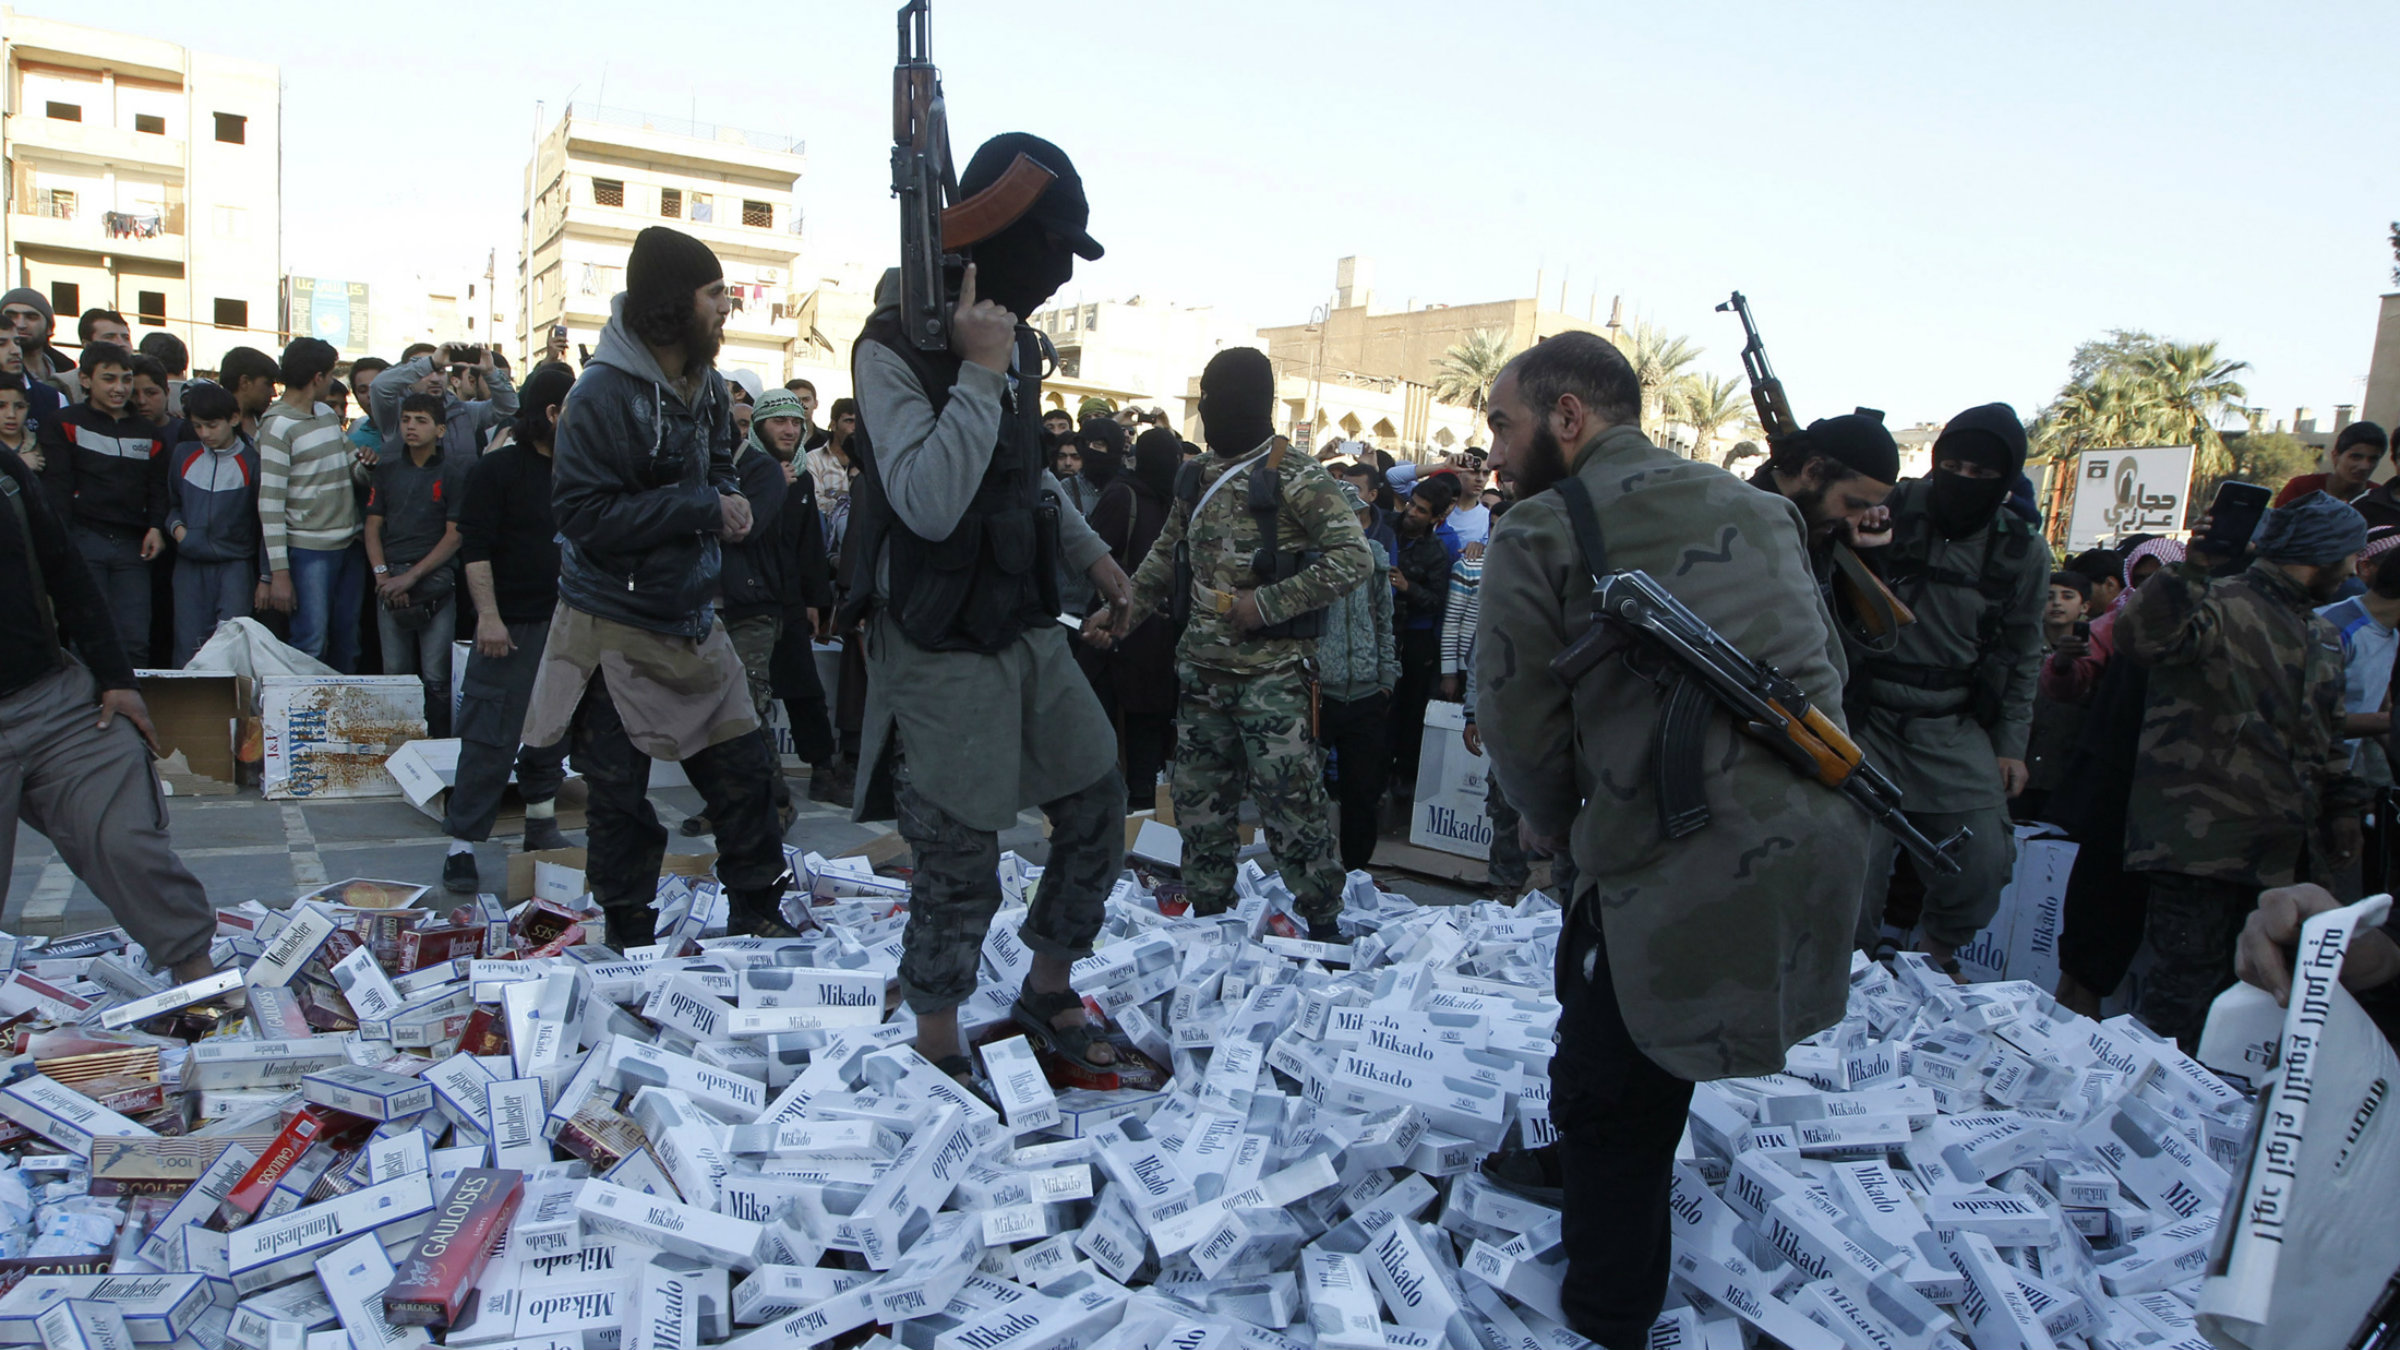 ISIL fighters stamp on confiscated cigarettes before setting them on fire in the city of Raqqa on April 2, 2014.